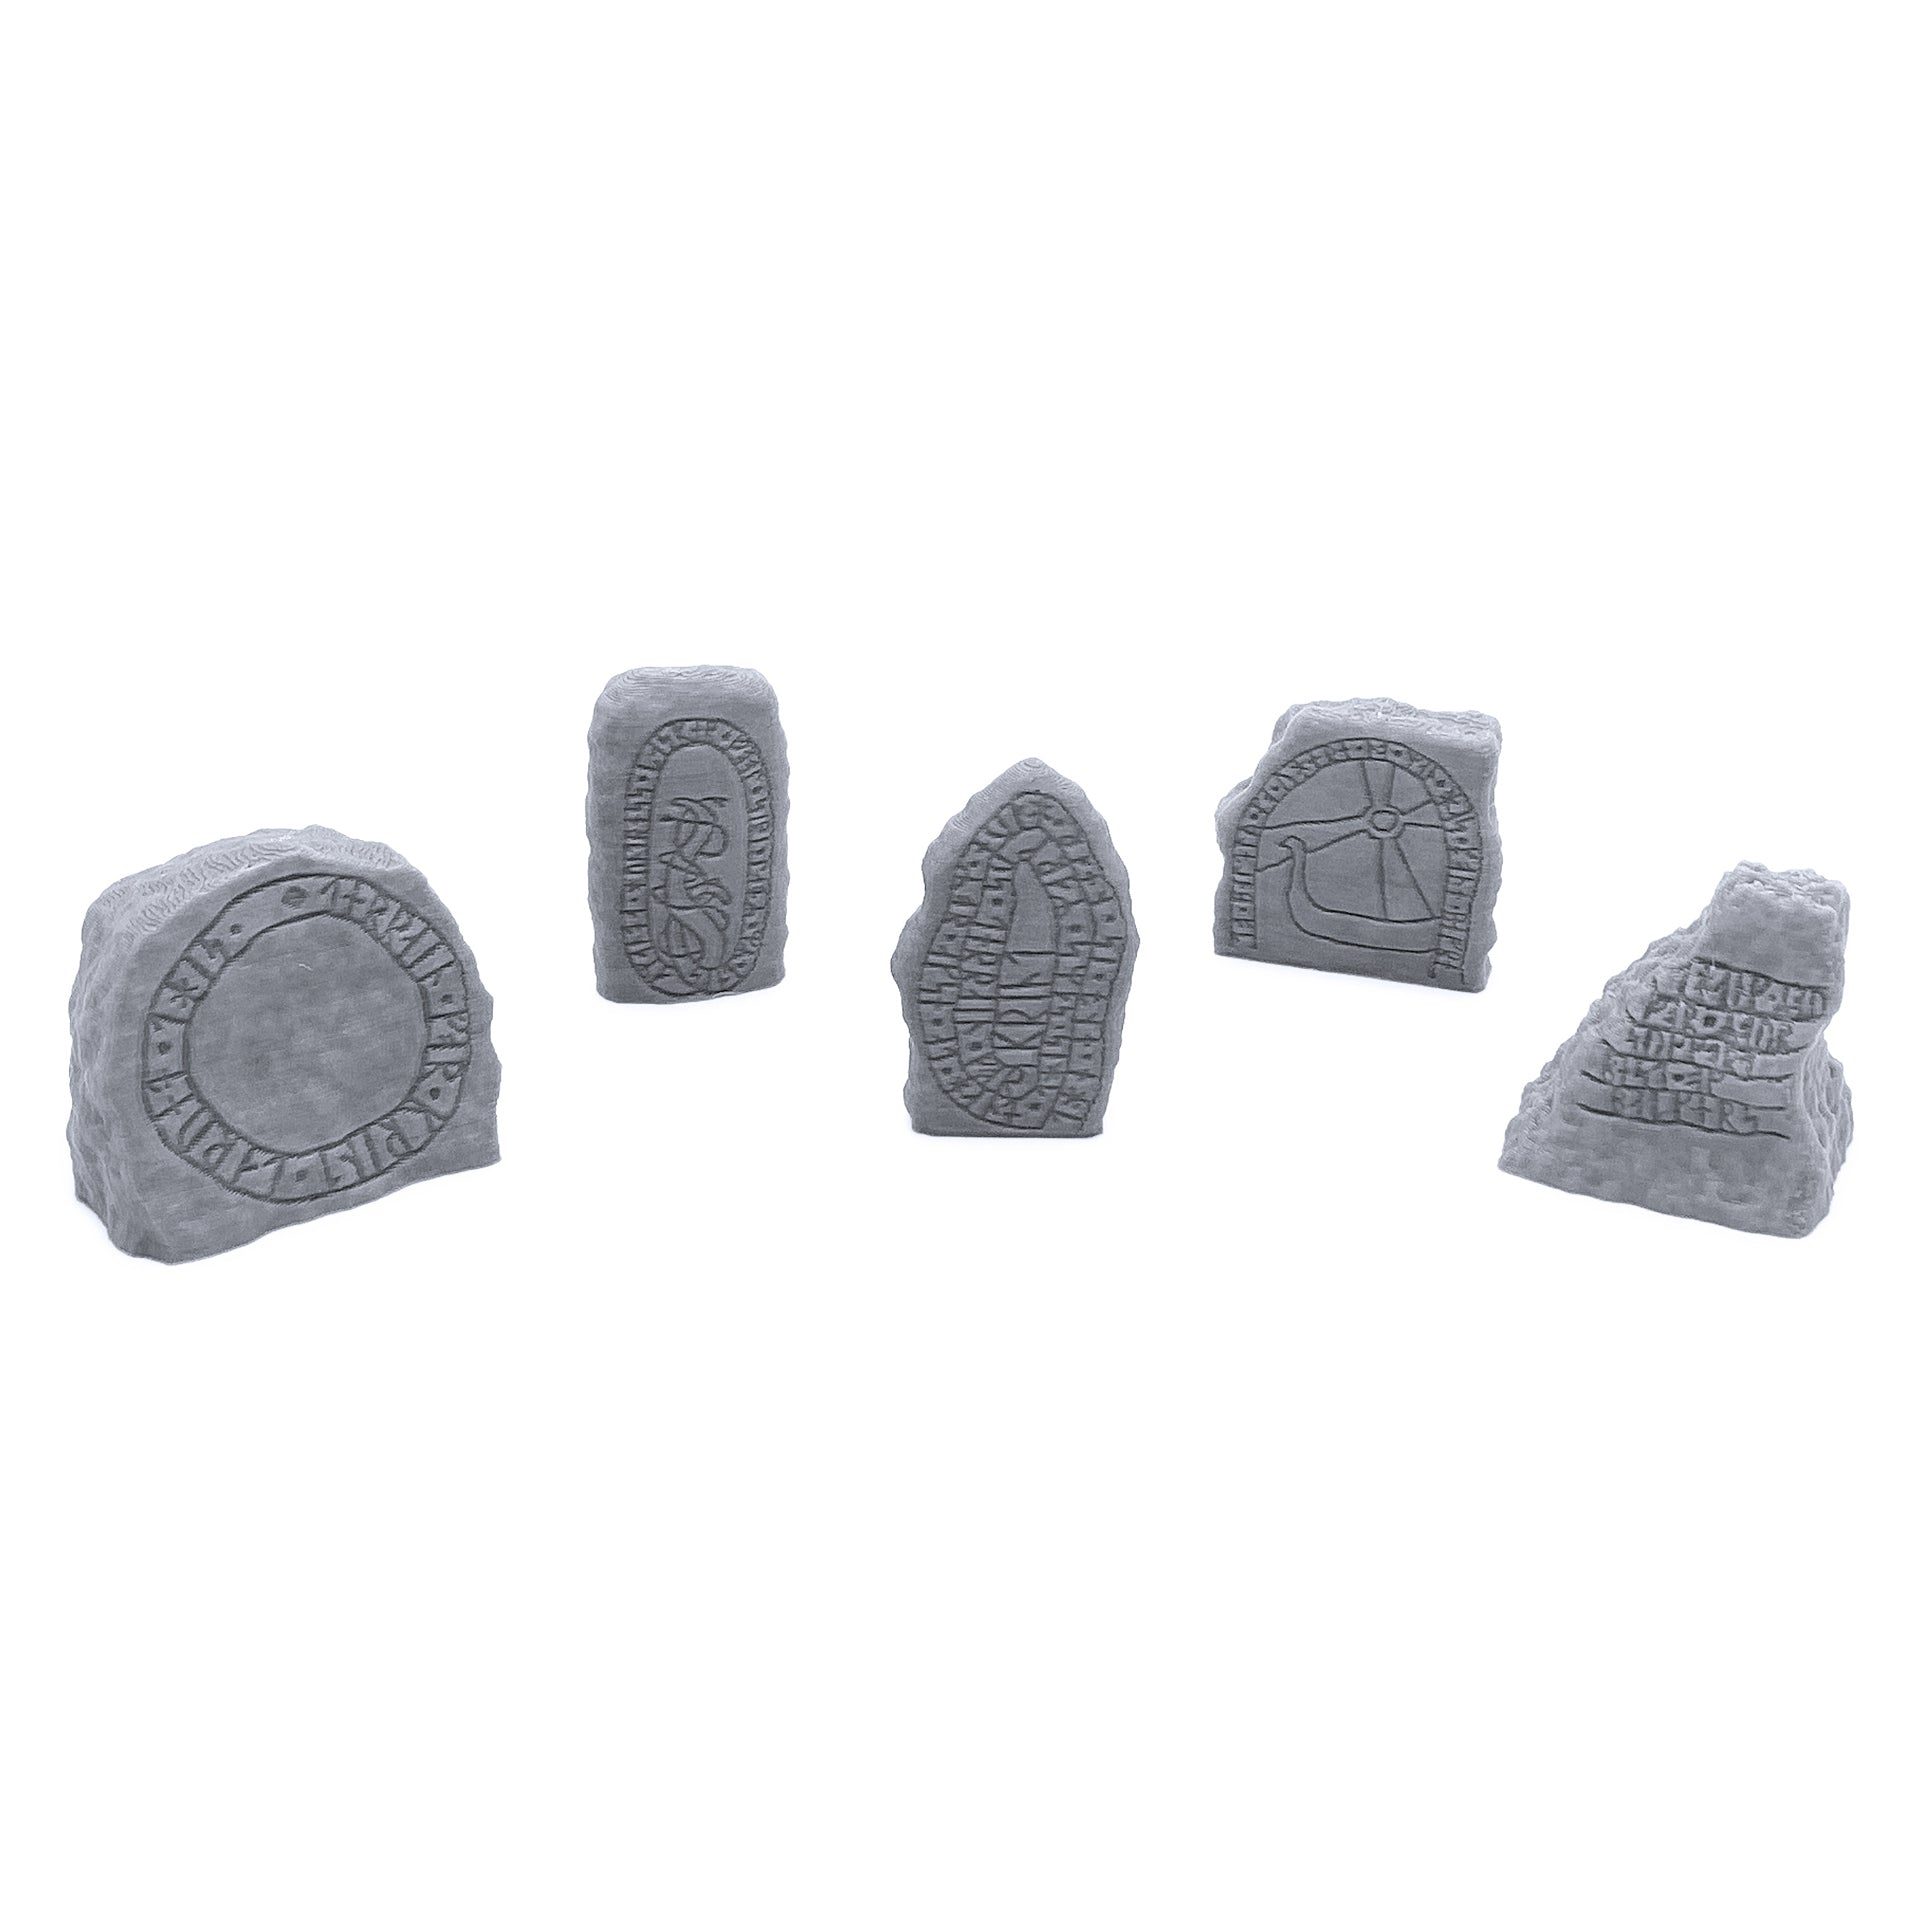 Viking Rune Stones - EnderToys Terrain